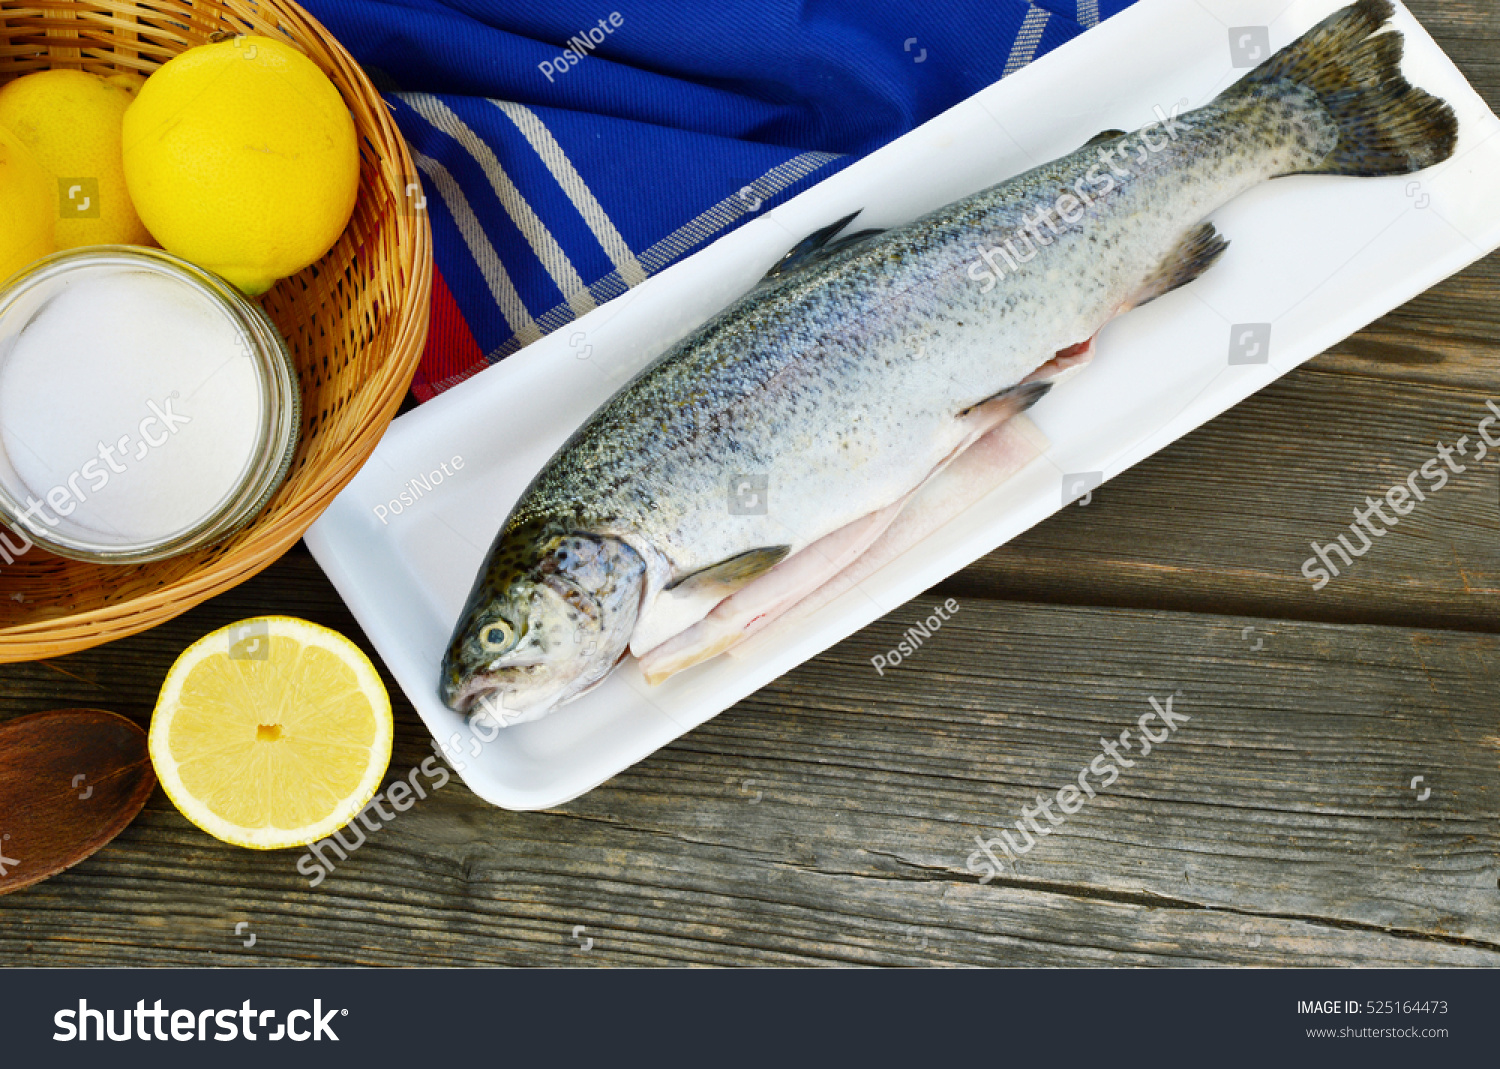 How to get rid of fishy smell in fish before cooking fish for How to get rid of fish odor